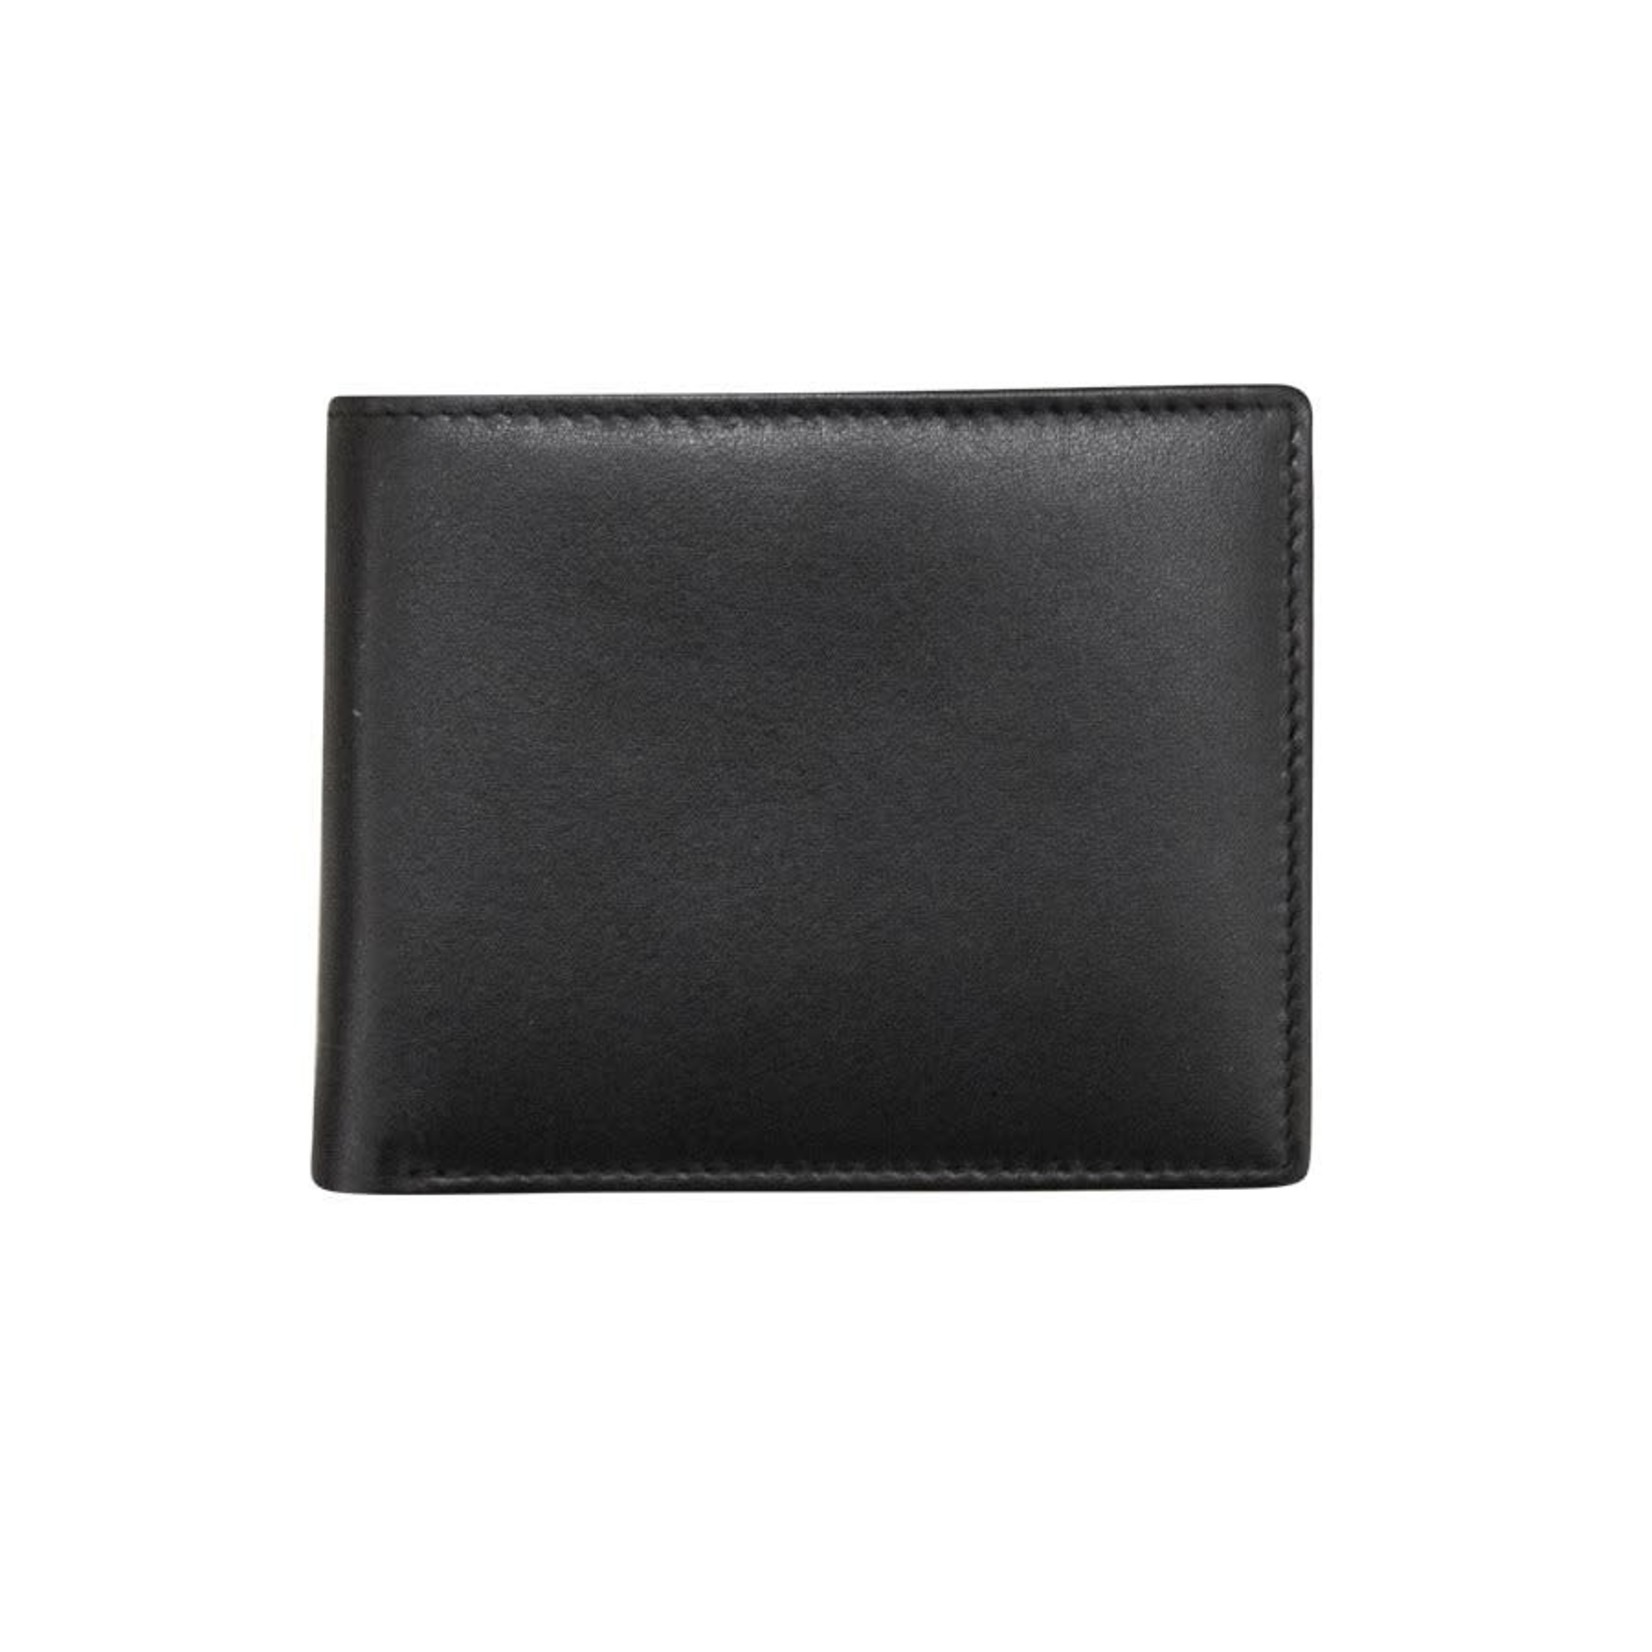 Leather Handbags and Accessories 7751 Black - RFID BiFold Wallet